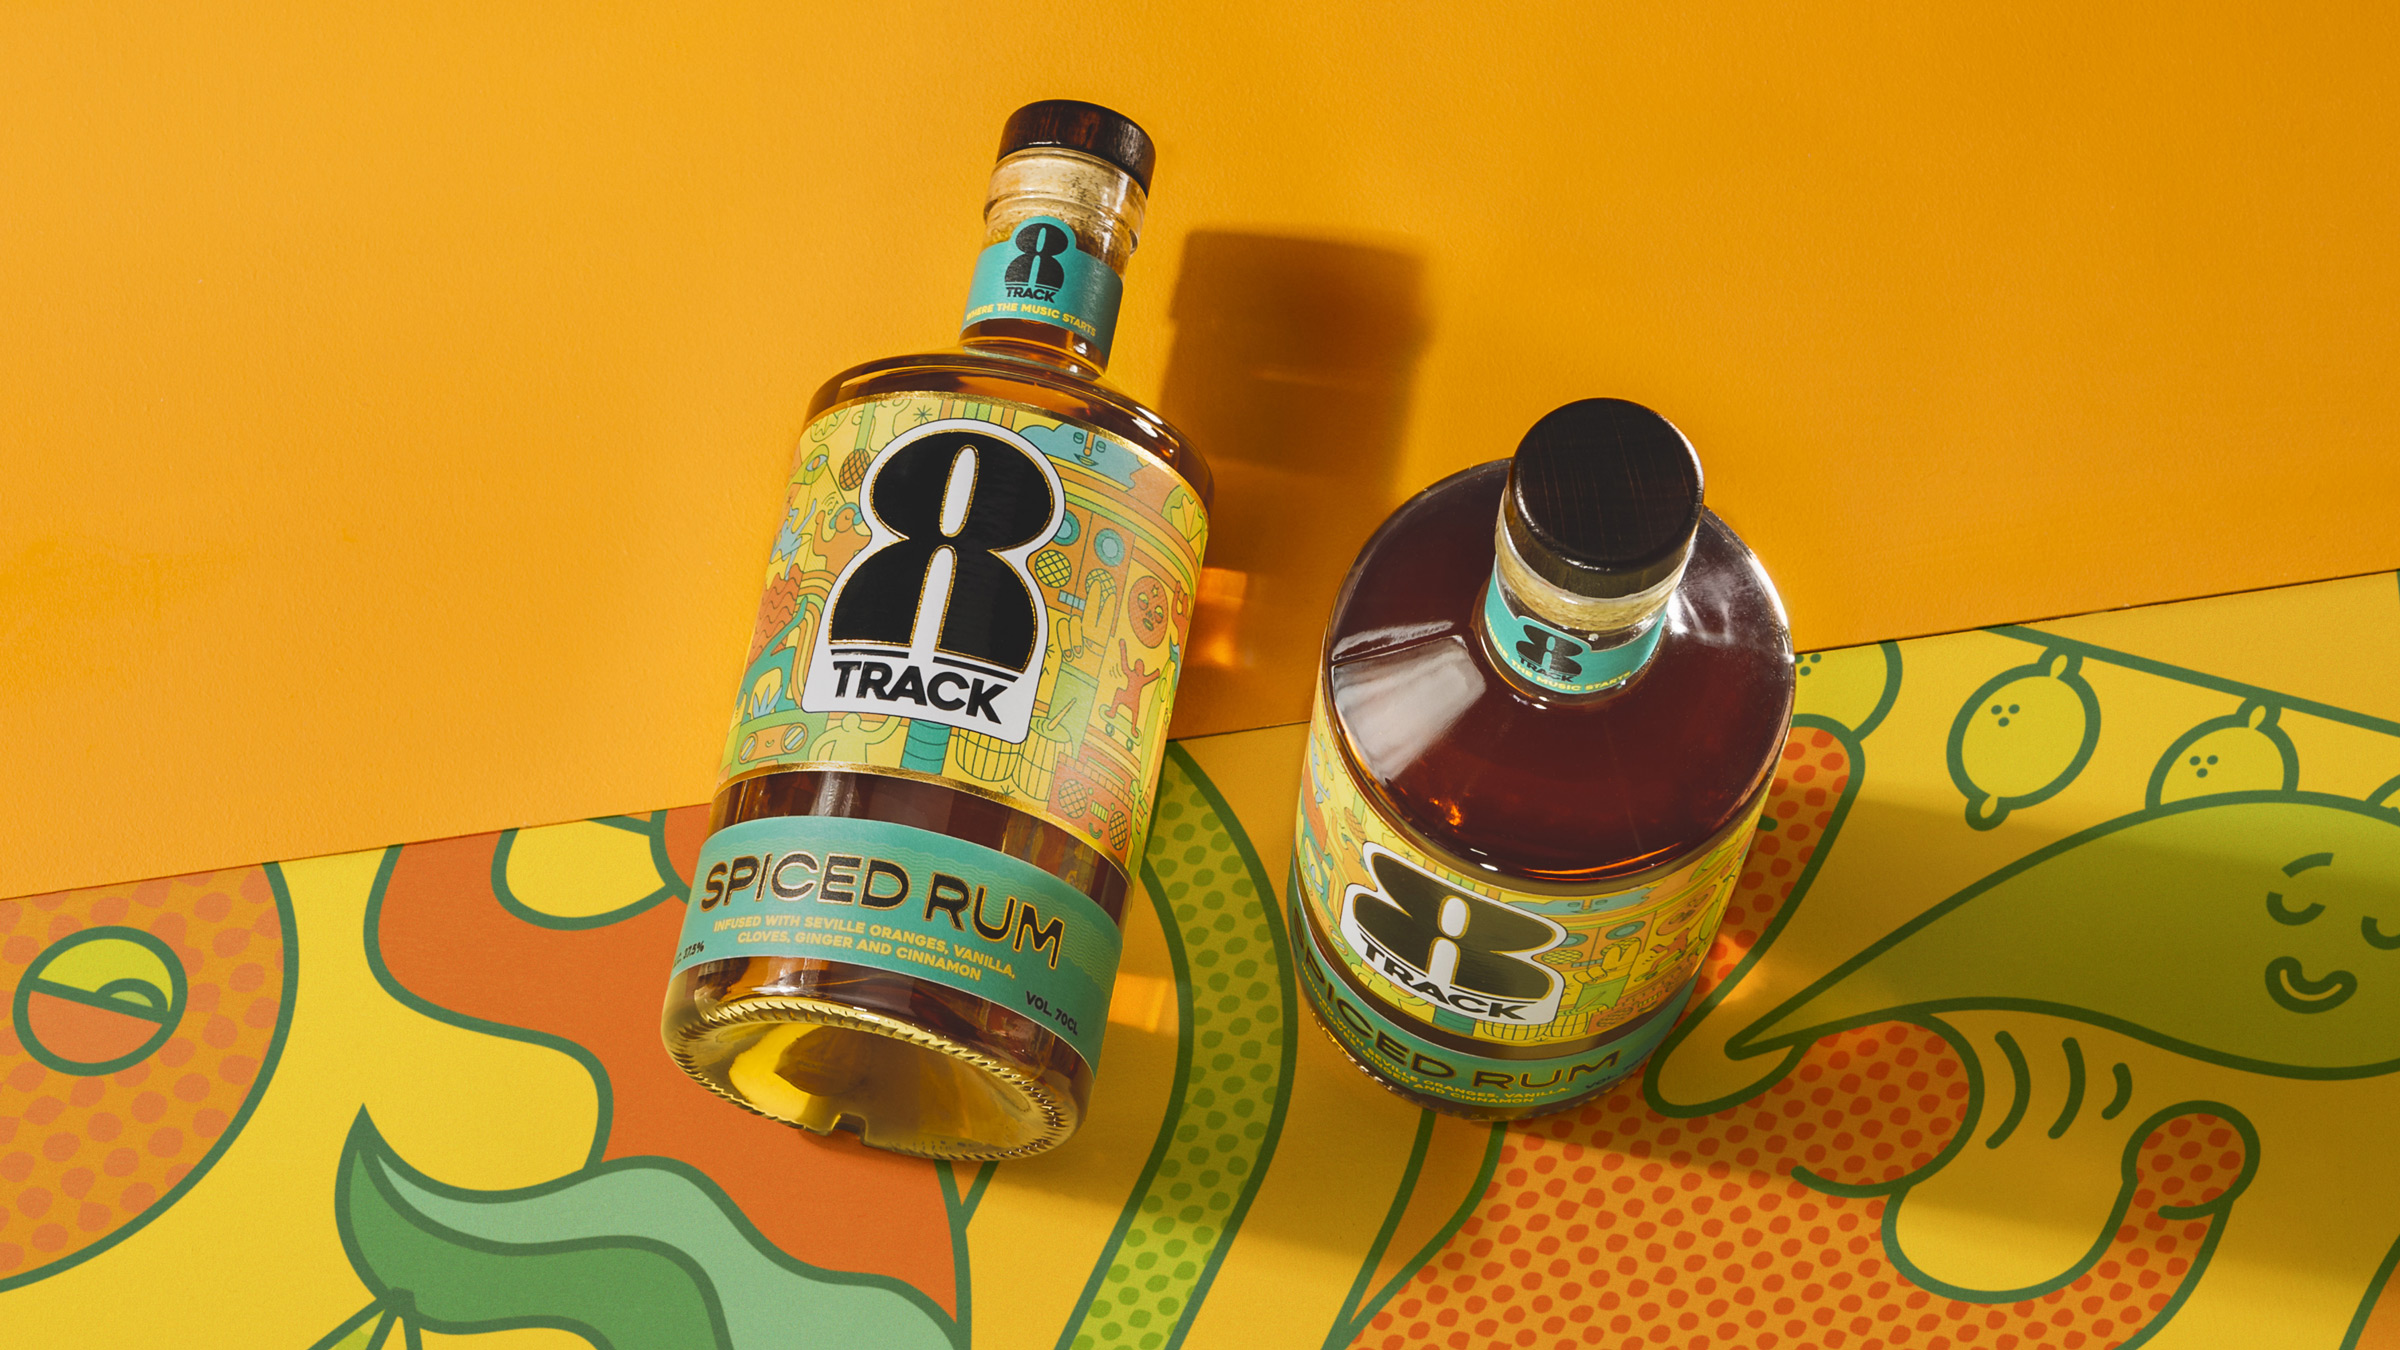 8Track Rum Brand Communication and Packaging Design by Kingdom & Sparrow